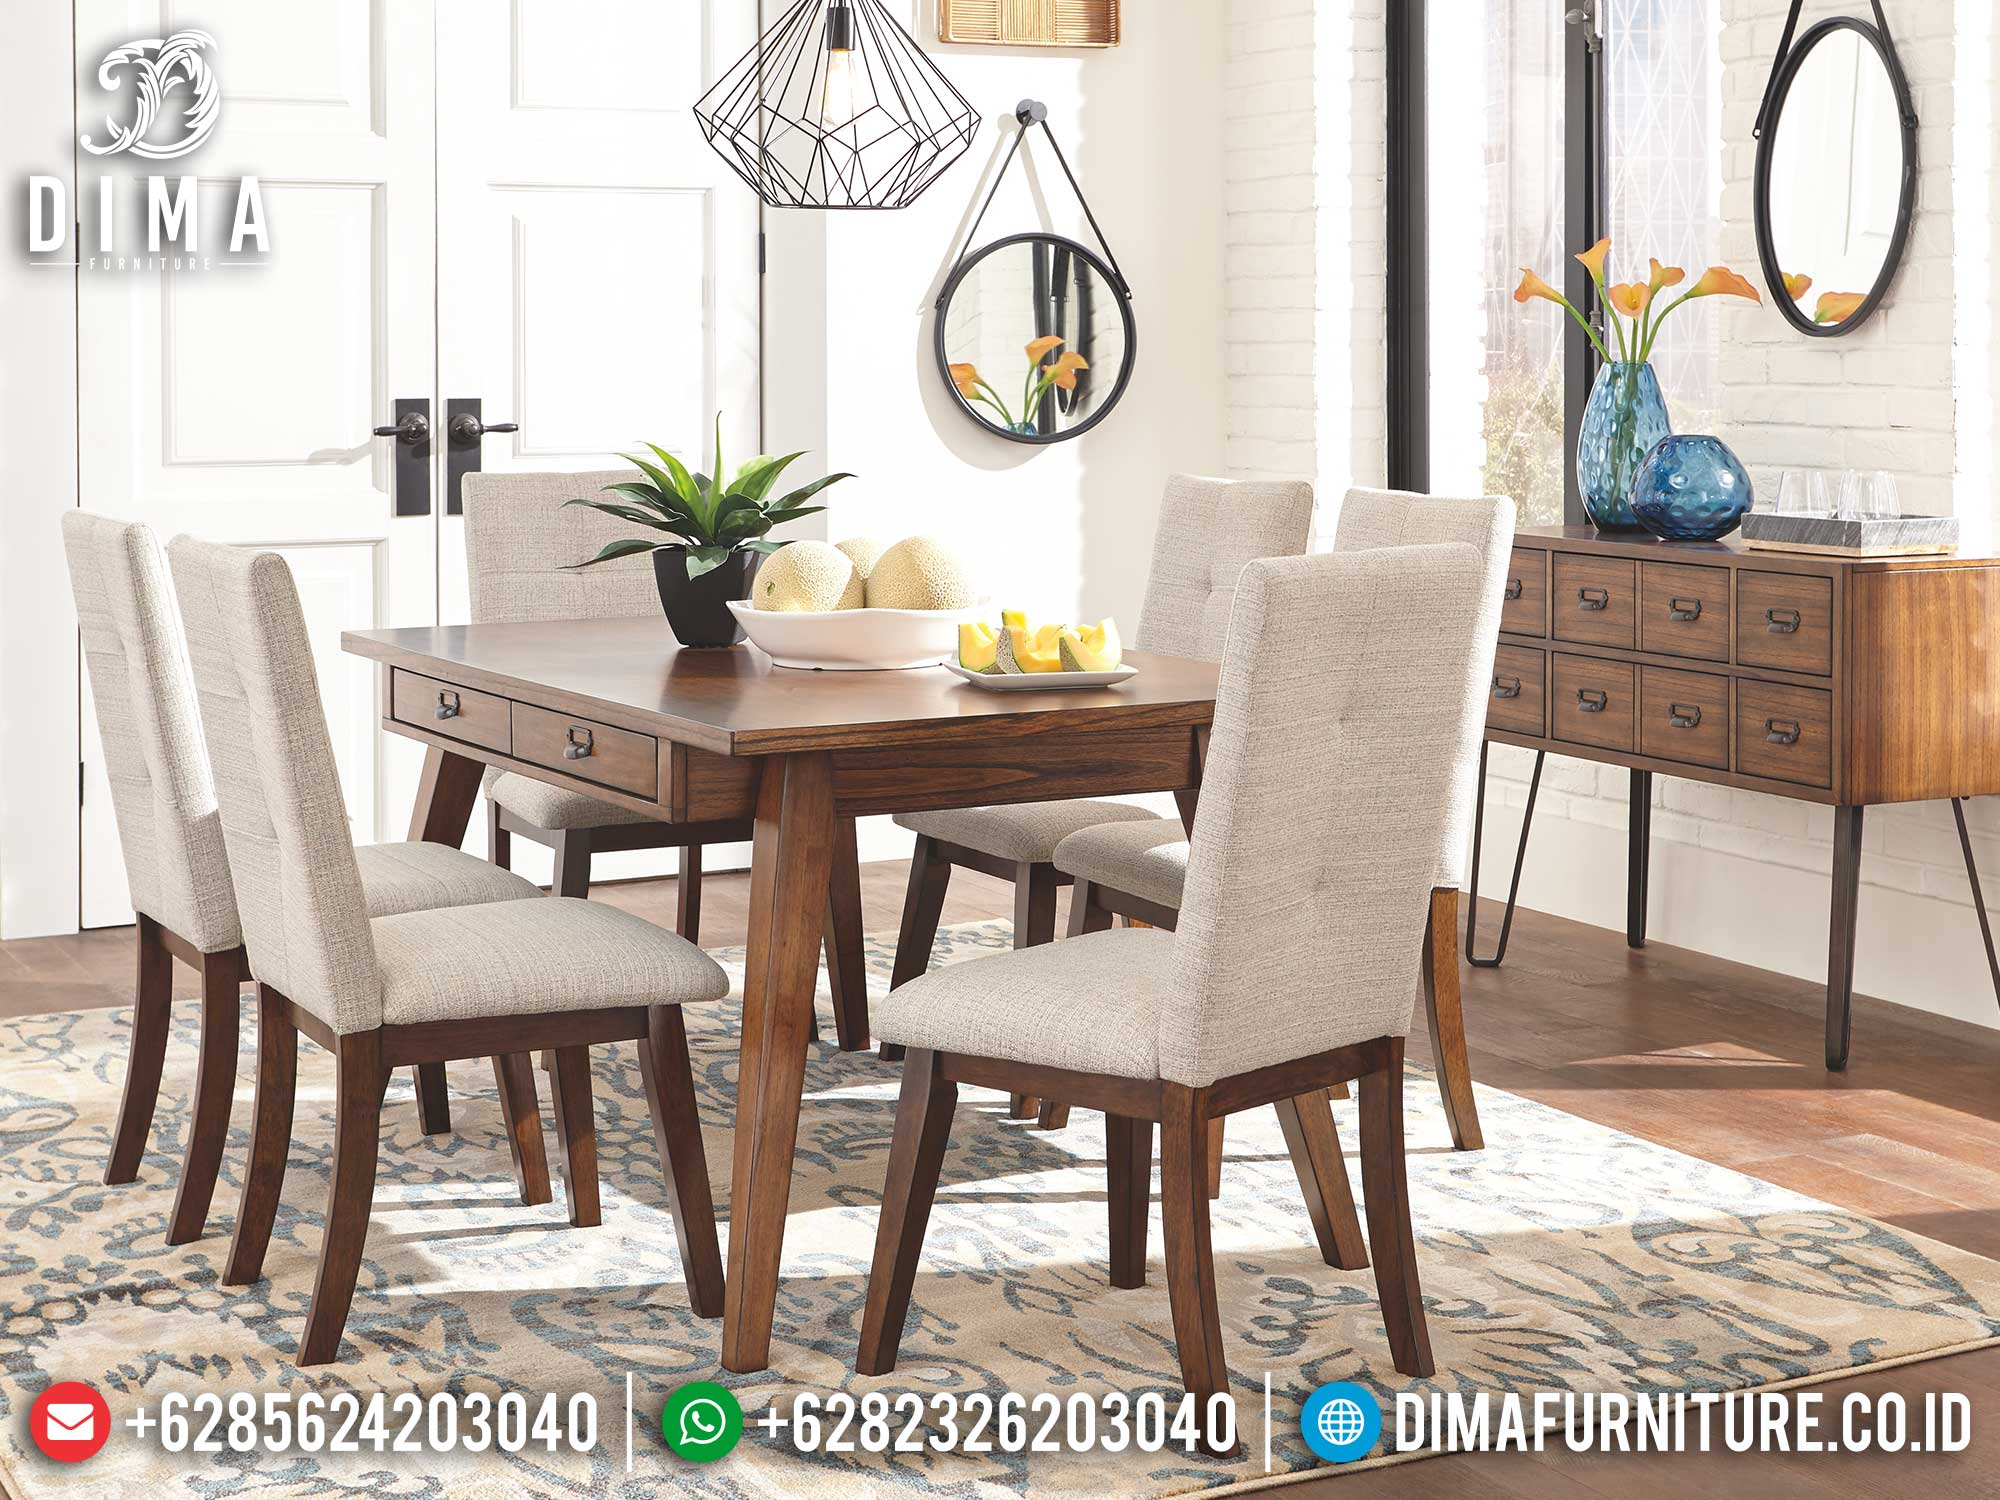 Set Meja Makan Minimalis Jati Klasik Natural Retro Style Great Solid Wood Mm-1075